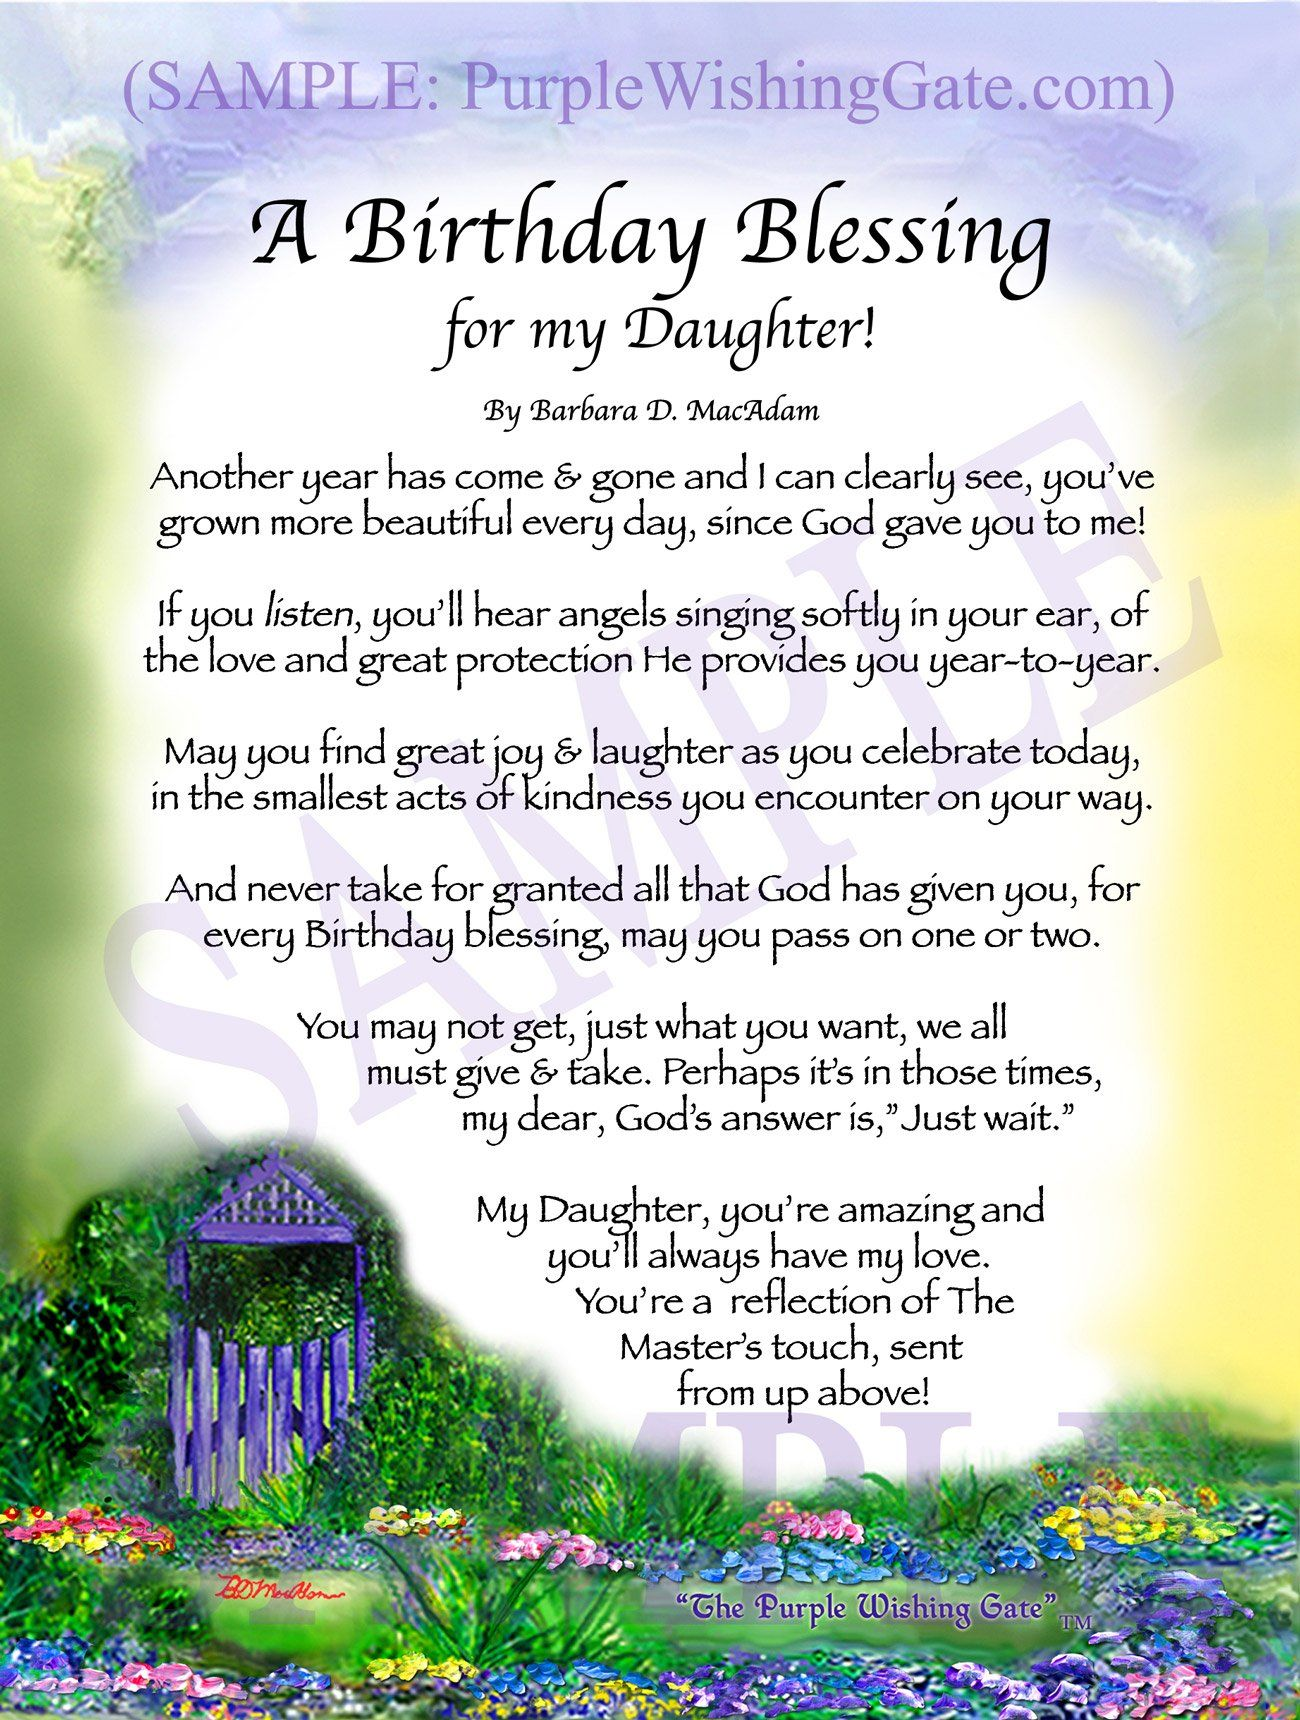 daughters birthday blessing framed personalized gift purplewishinggatecom